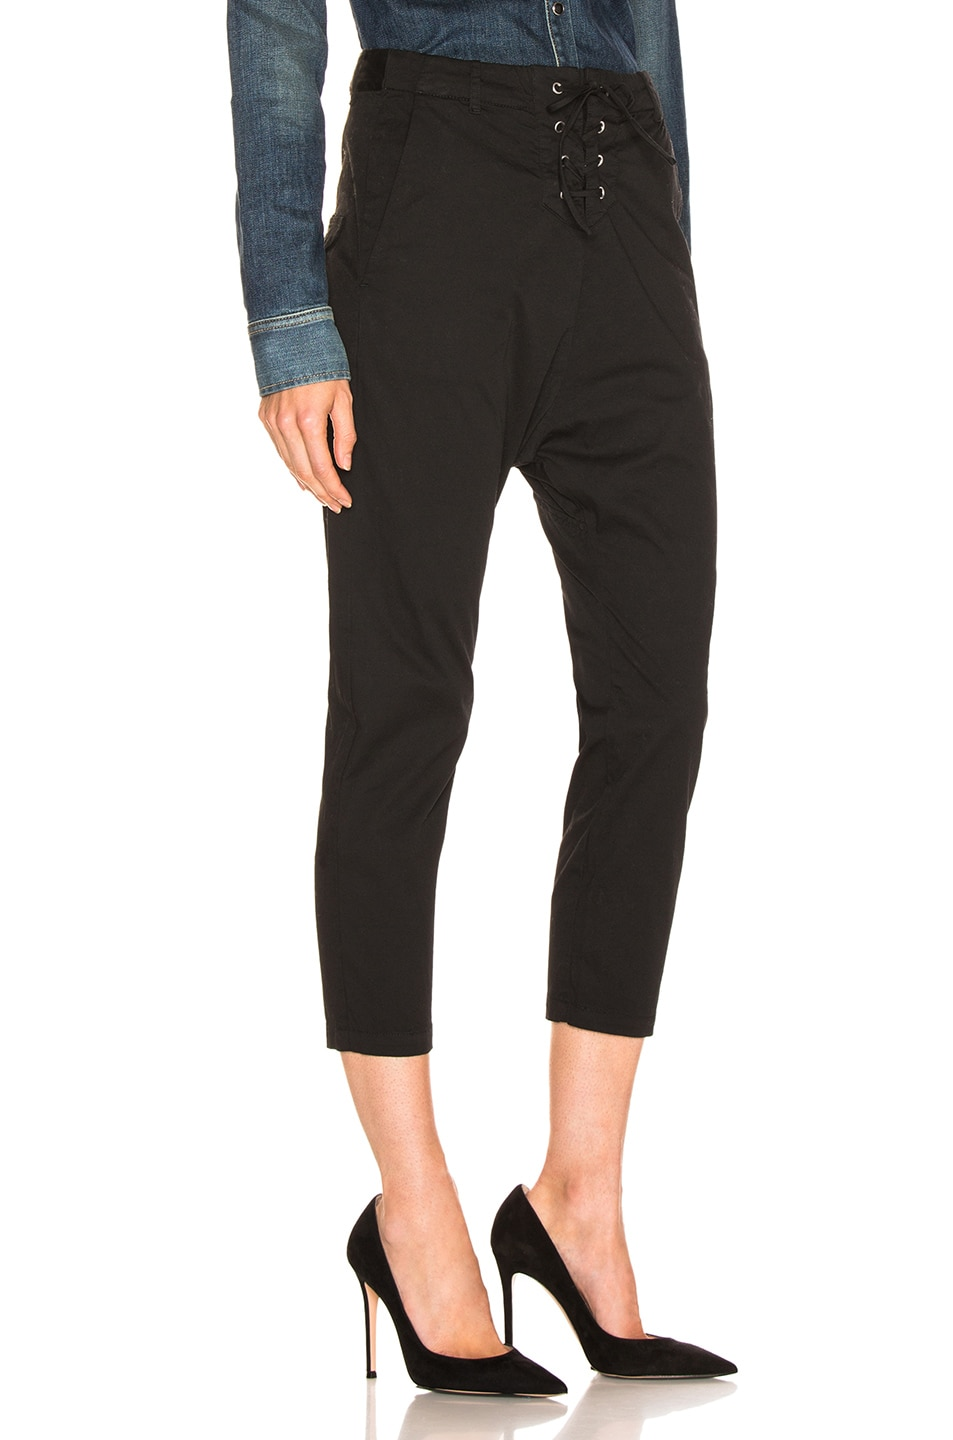 Image 2 of NILI LOTAN Lace Up Avery Pant in Jet Black